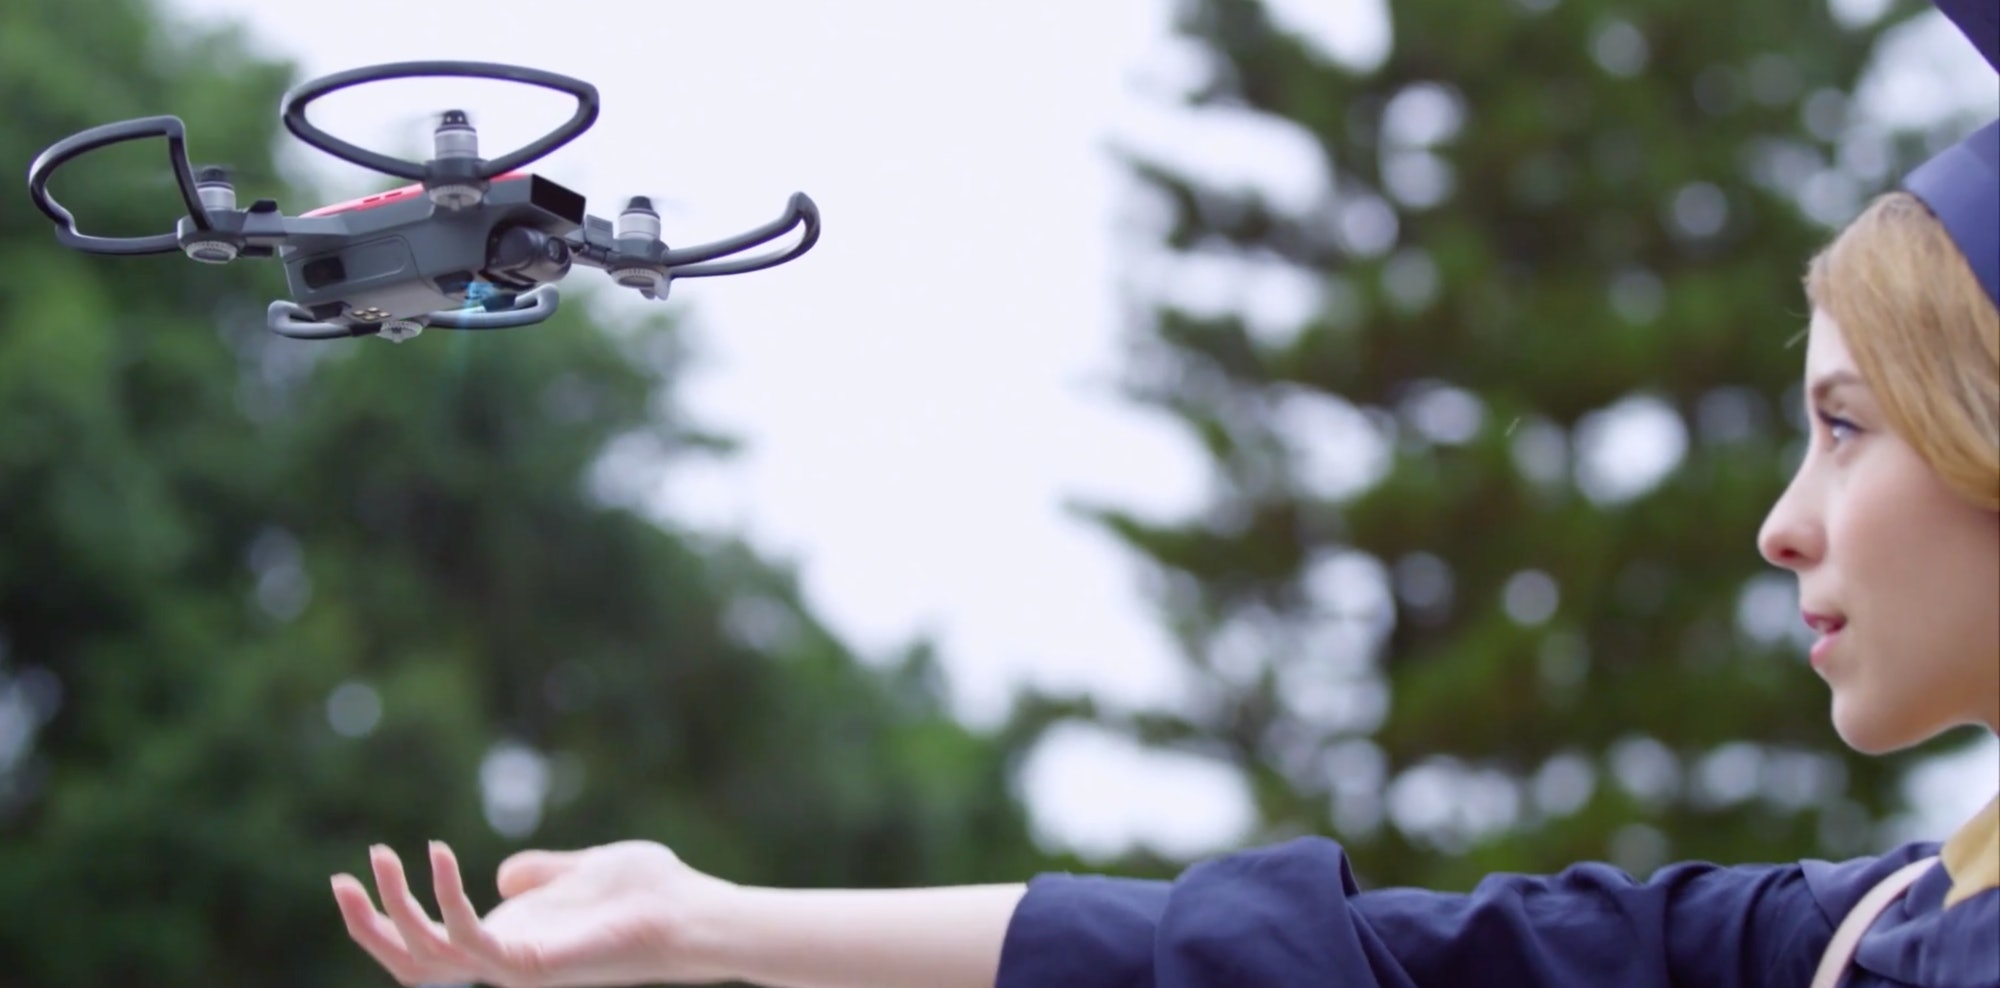 A promotional video for the DJI Spark shows a recent graduate launching the drone.